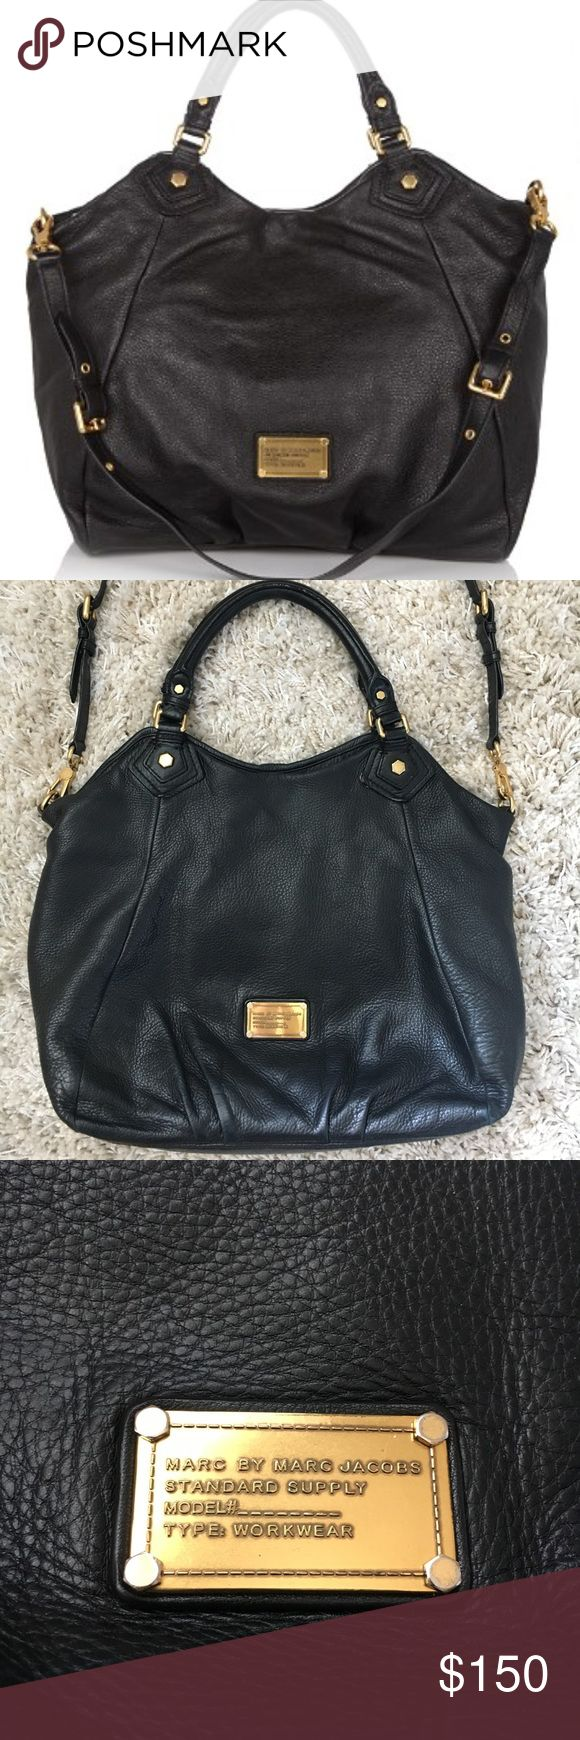 MARC BY MARC JACOBS Classic Q Franc Black Pre-Owned MARC BY MARC JACOBS Classic Q Franc in Black   Normal wear and tear from everyday but otherwise in very good condition (see pictures): Slight wear on the handles  Very slight wear on the buttons attached to the handles Standard make up stains in the inside liner Marc By Marc Jacobs Bags